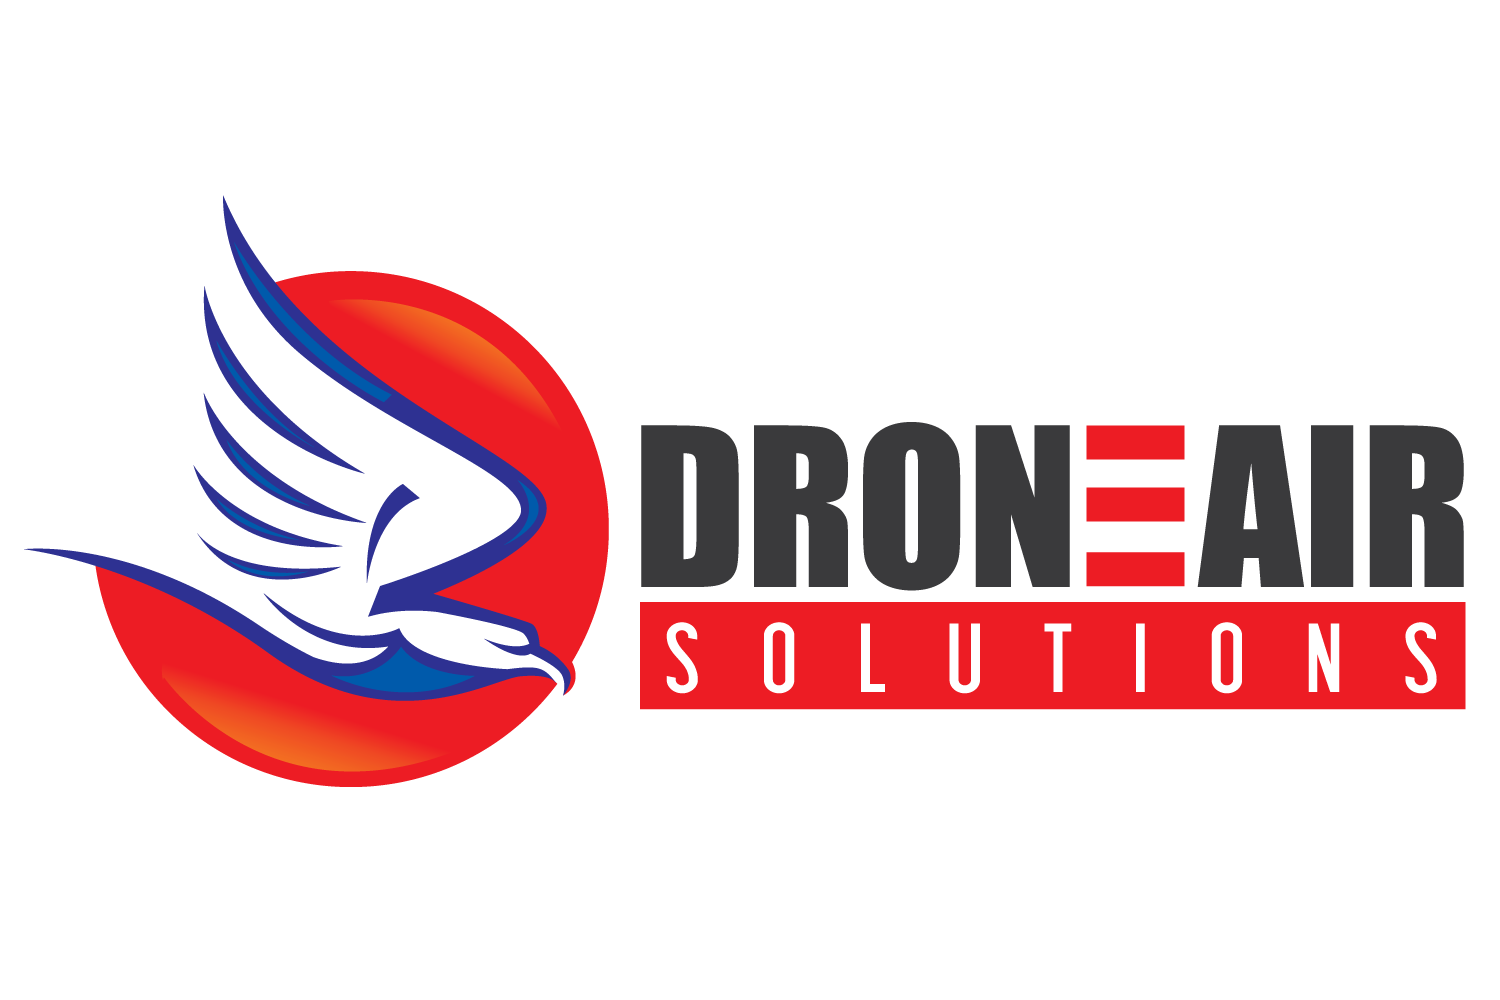 DRONE-AIR-SOLUTIONS.pngbig